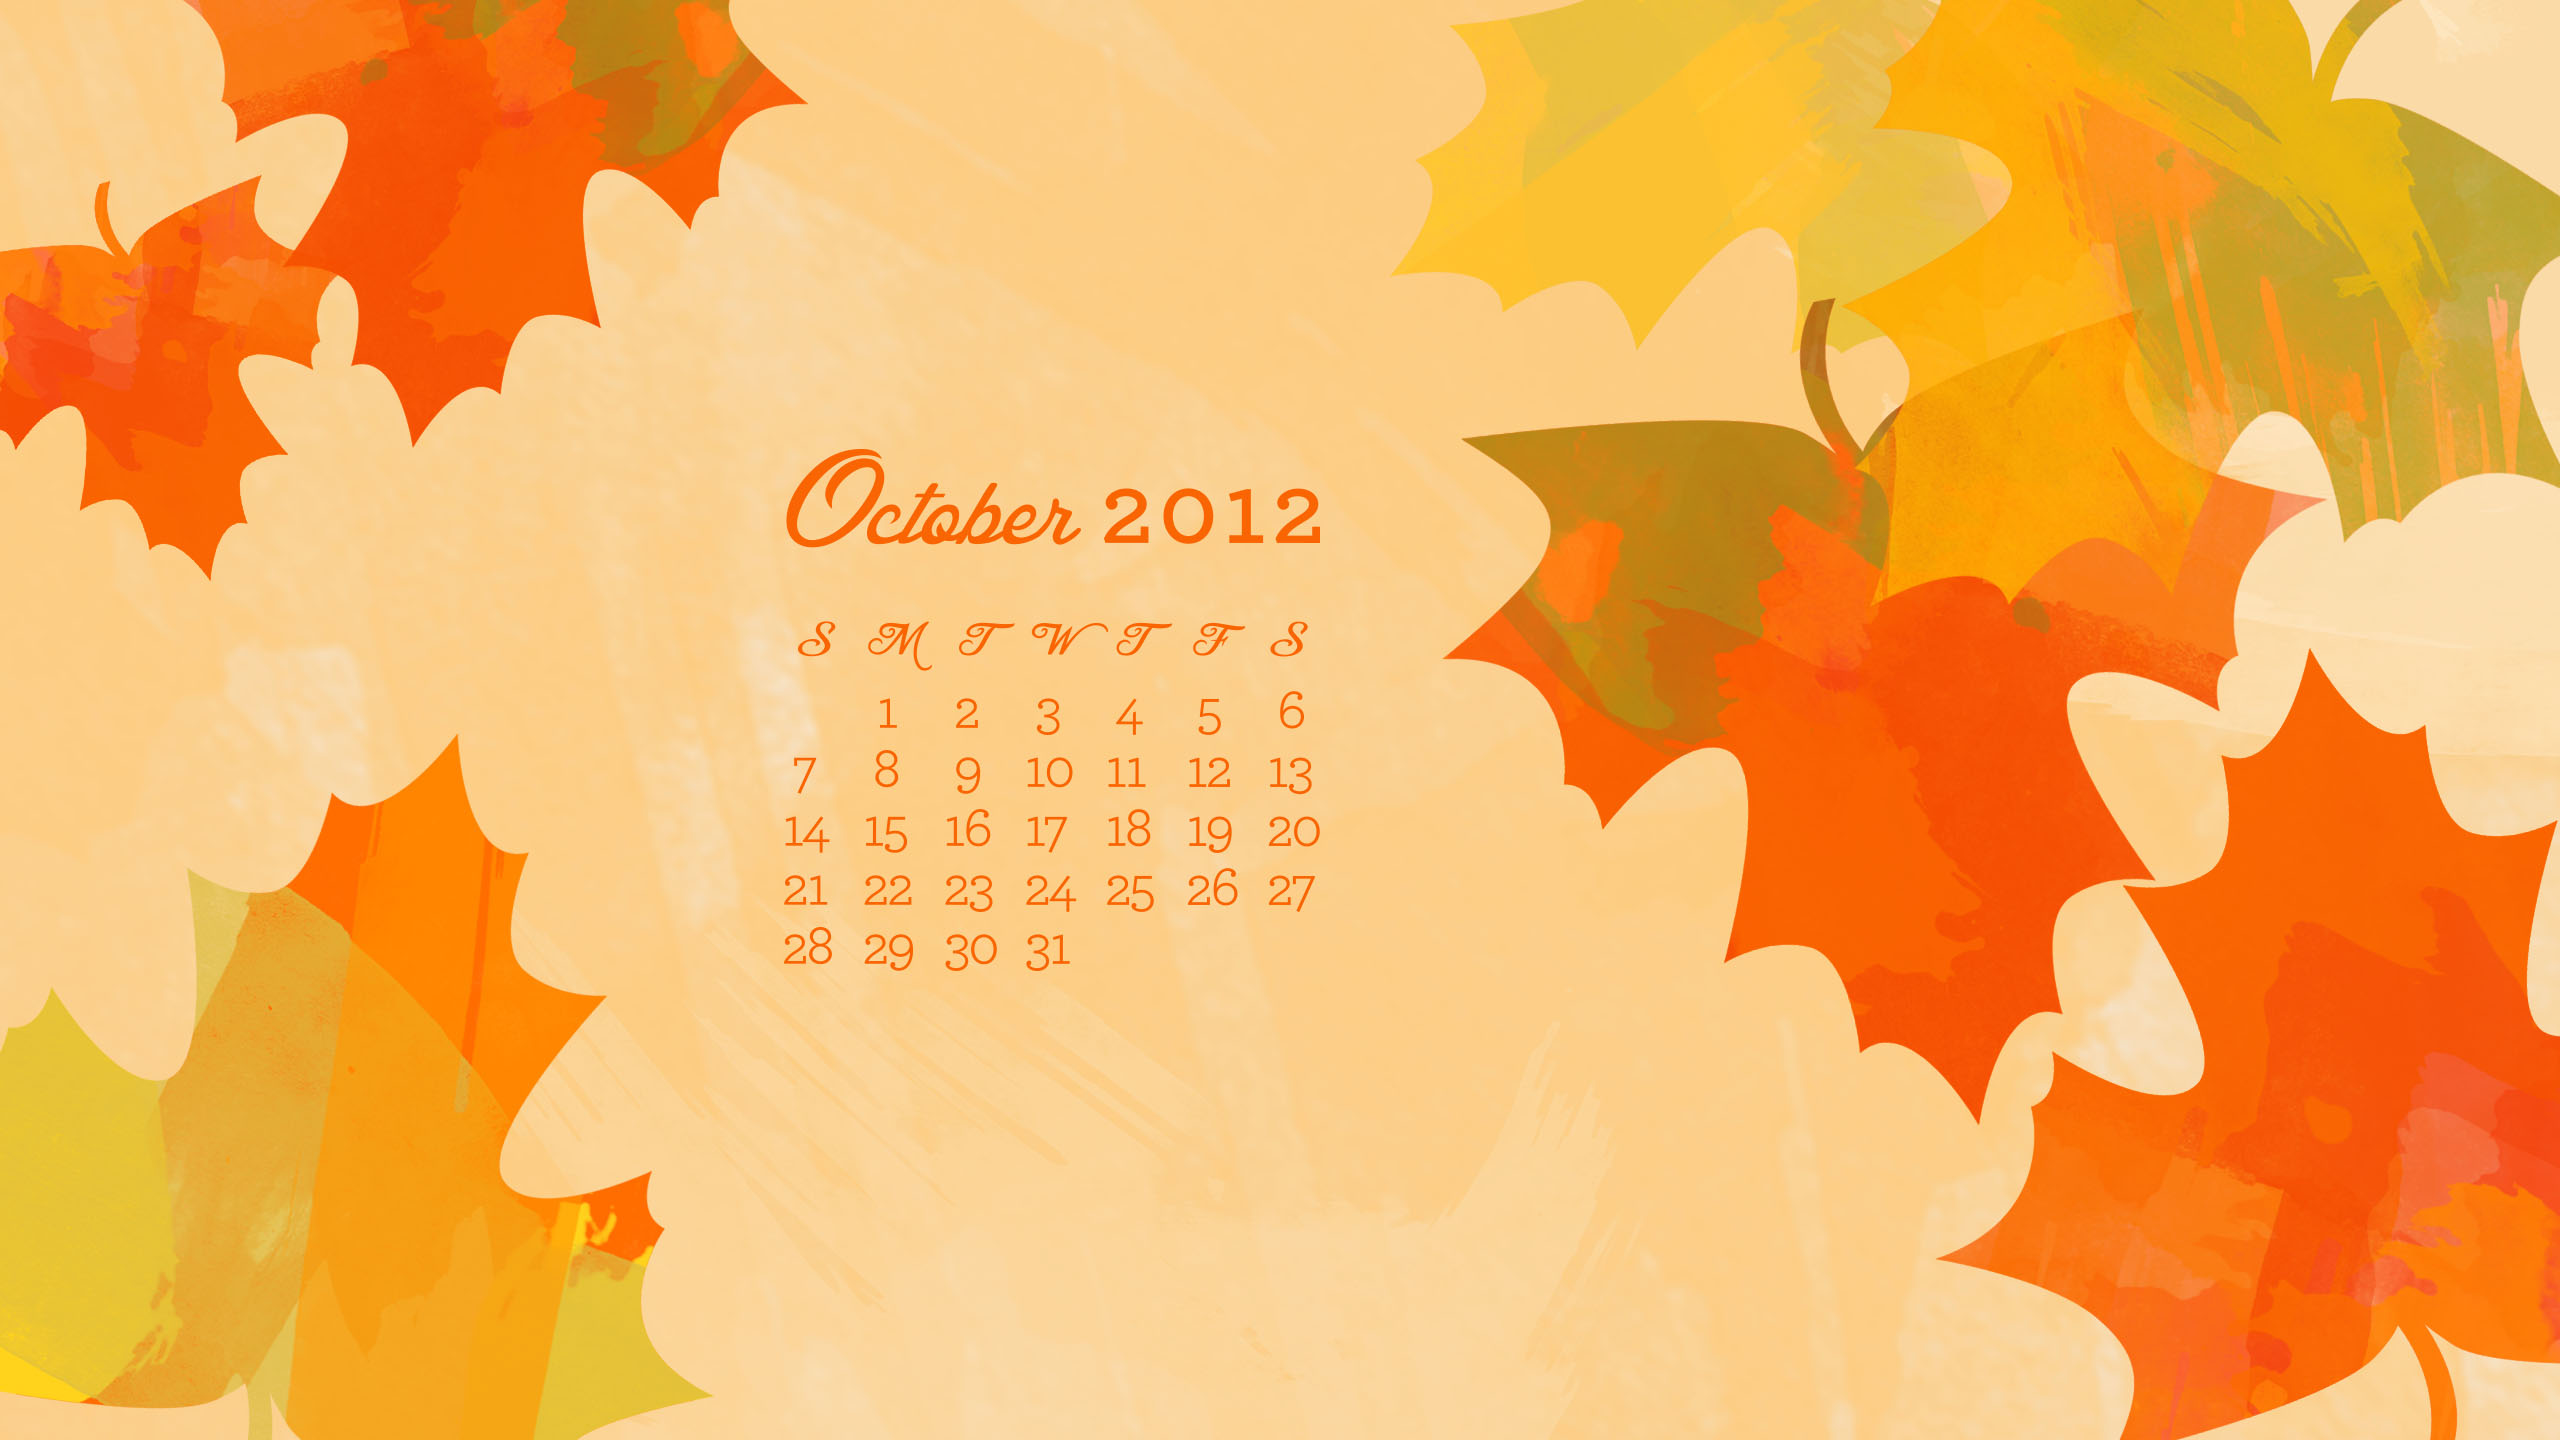 Calendar Wallpaper Iphone : Sarah hearts october desktop iphone ipad